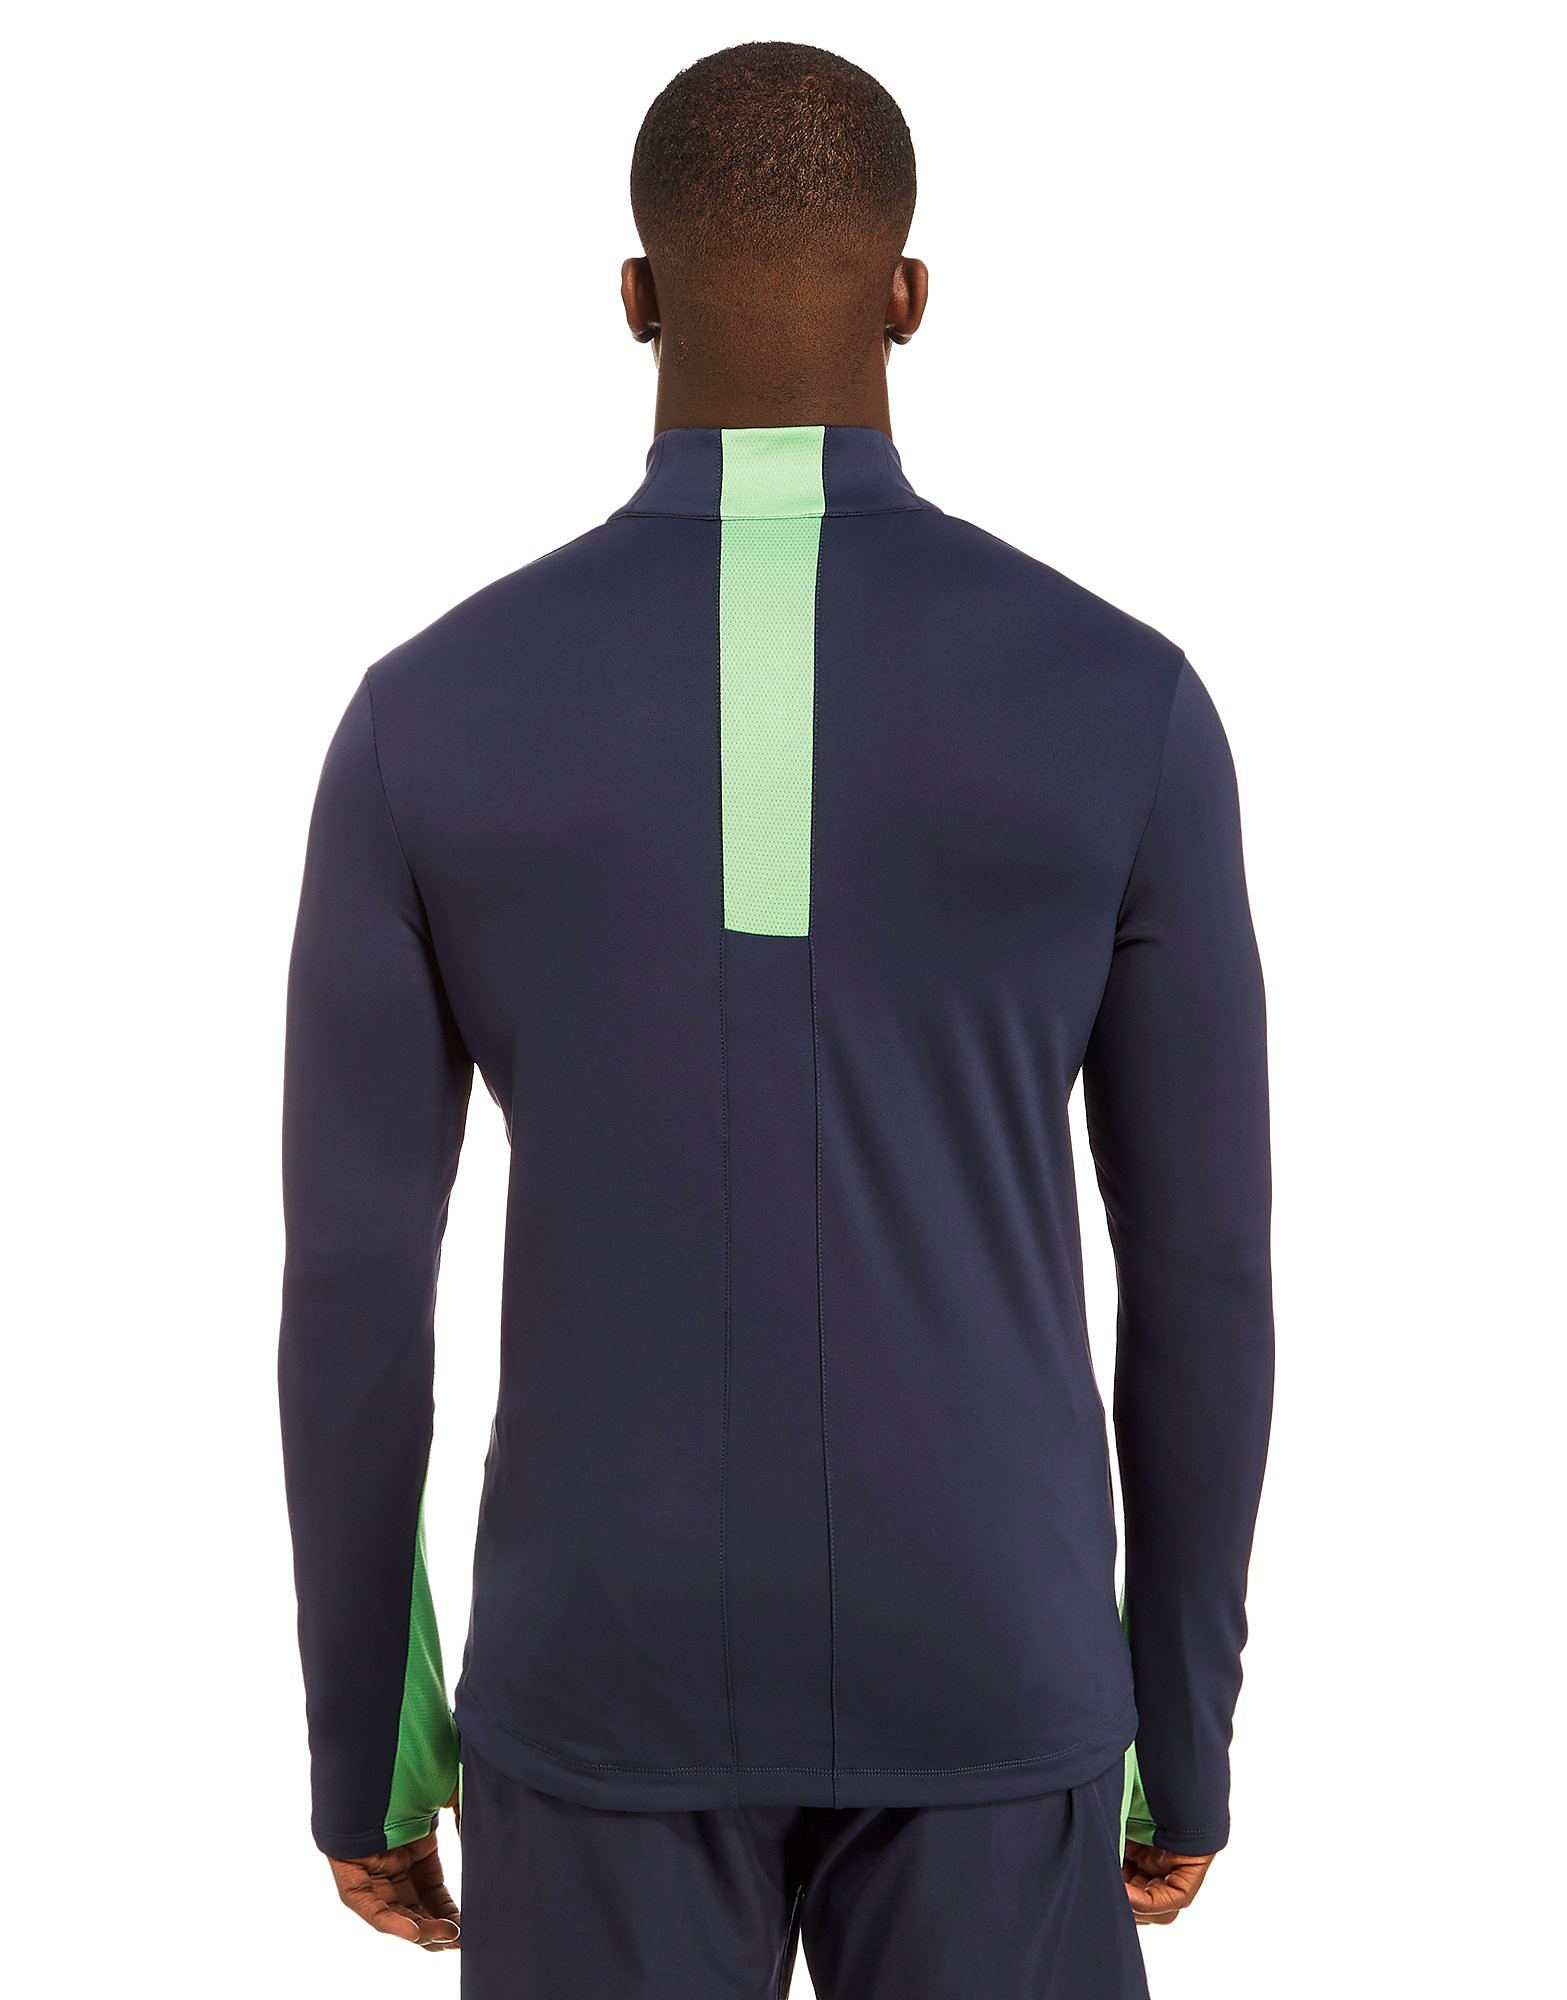 Umbro Republic of Ireland Half Zip Top